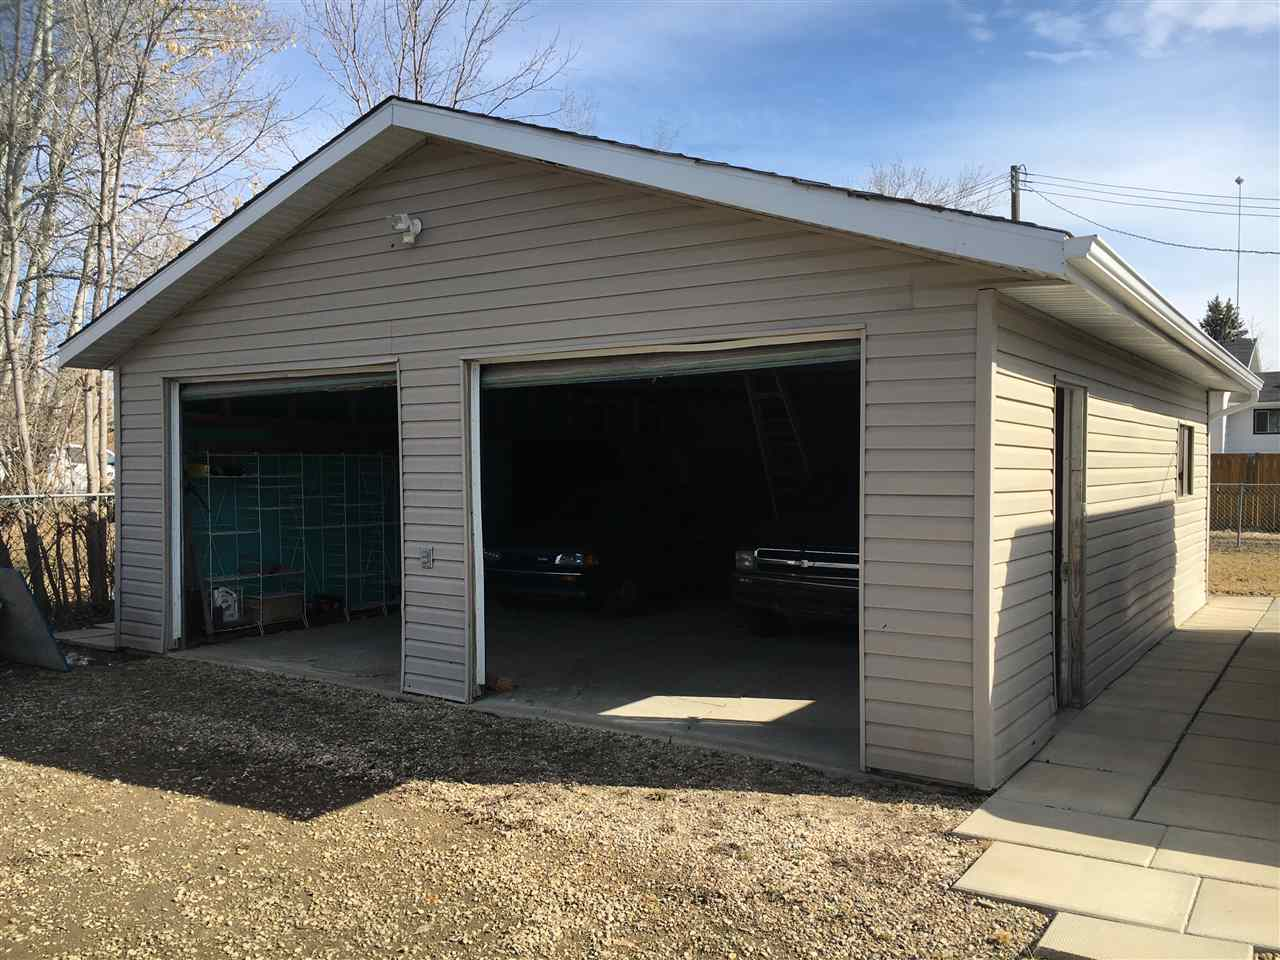 Oversized double garage built in 1986 on 45x115 foot lot. Partially fenced.